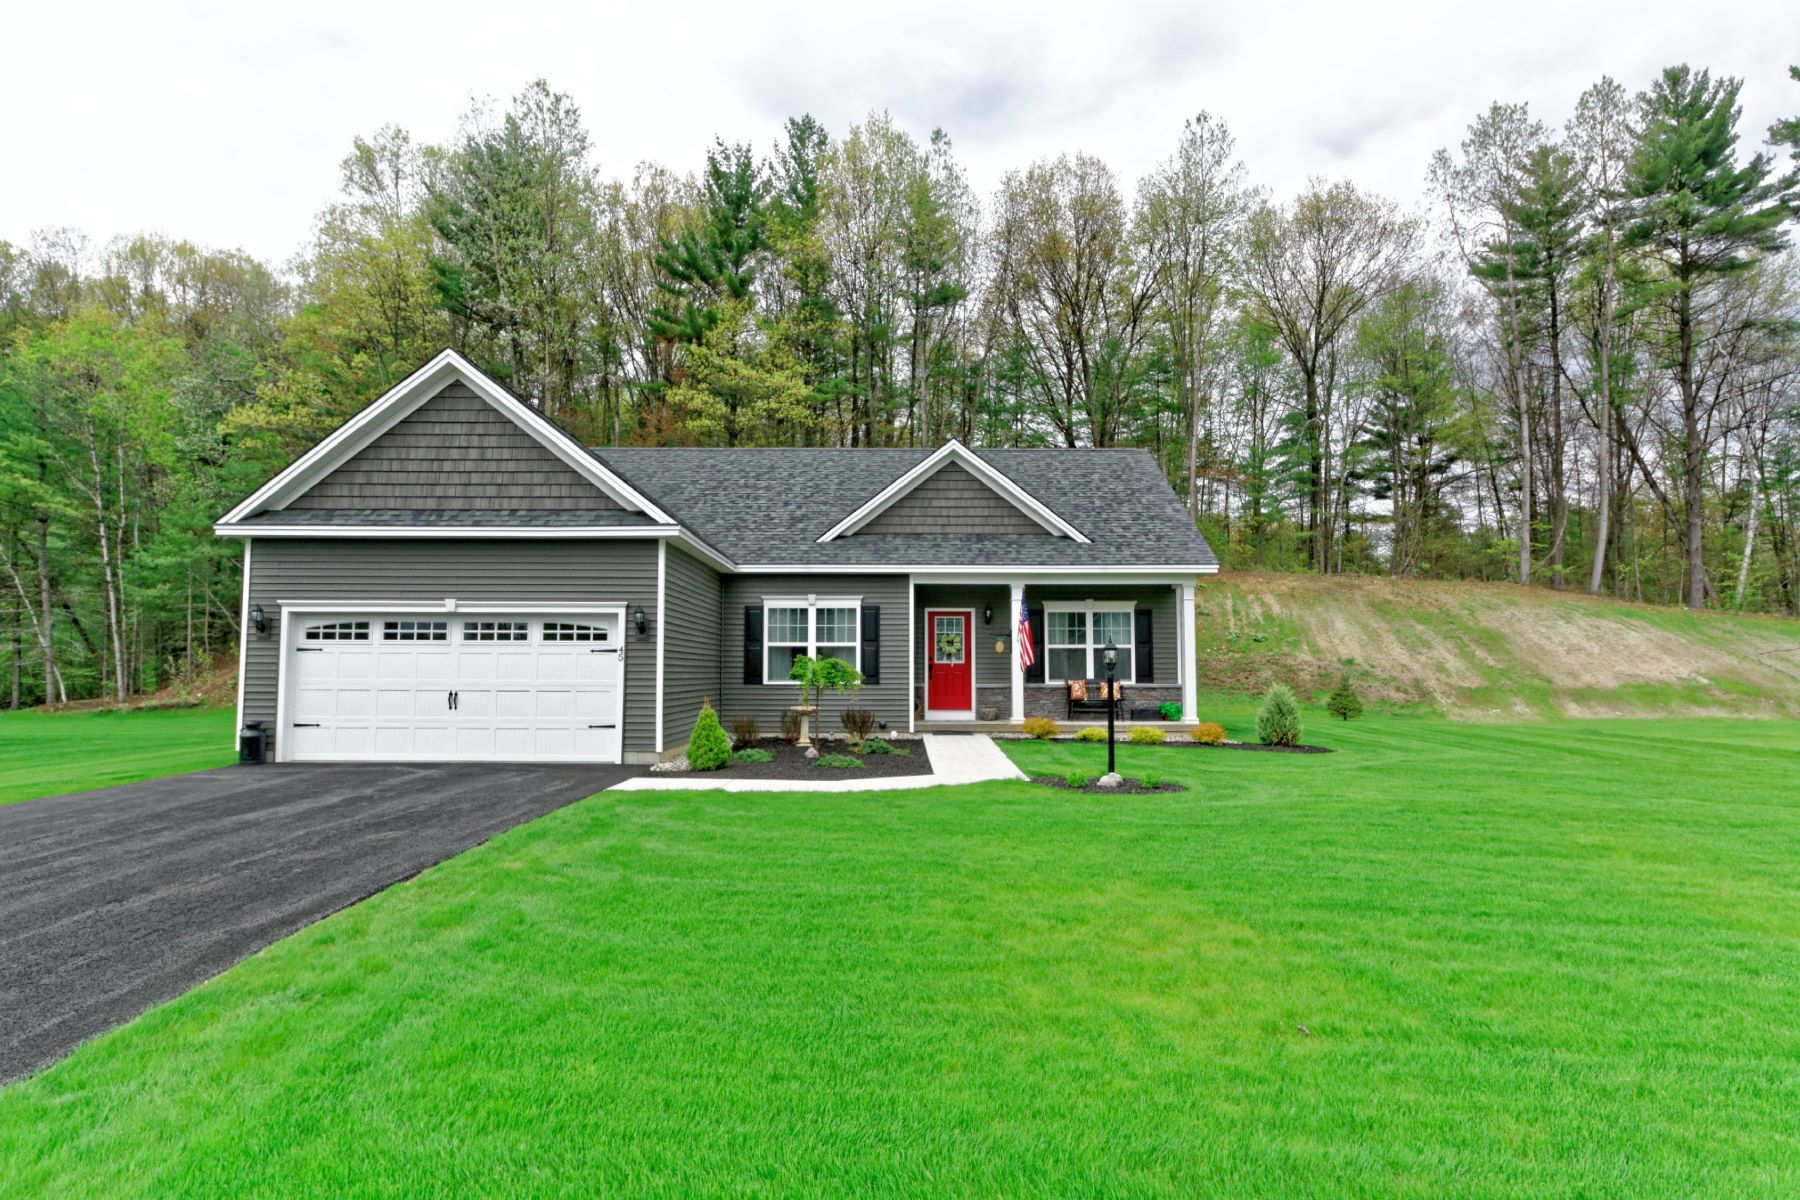 Single Family Homes for Sale at Build Your Dream Home in Schuyler Hills! Lot 15 Patriot Hill Dr Saratoga Springs, New York 12866 United States